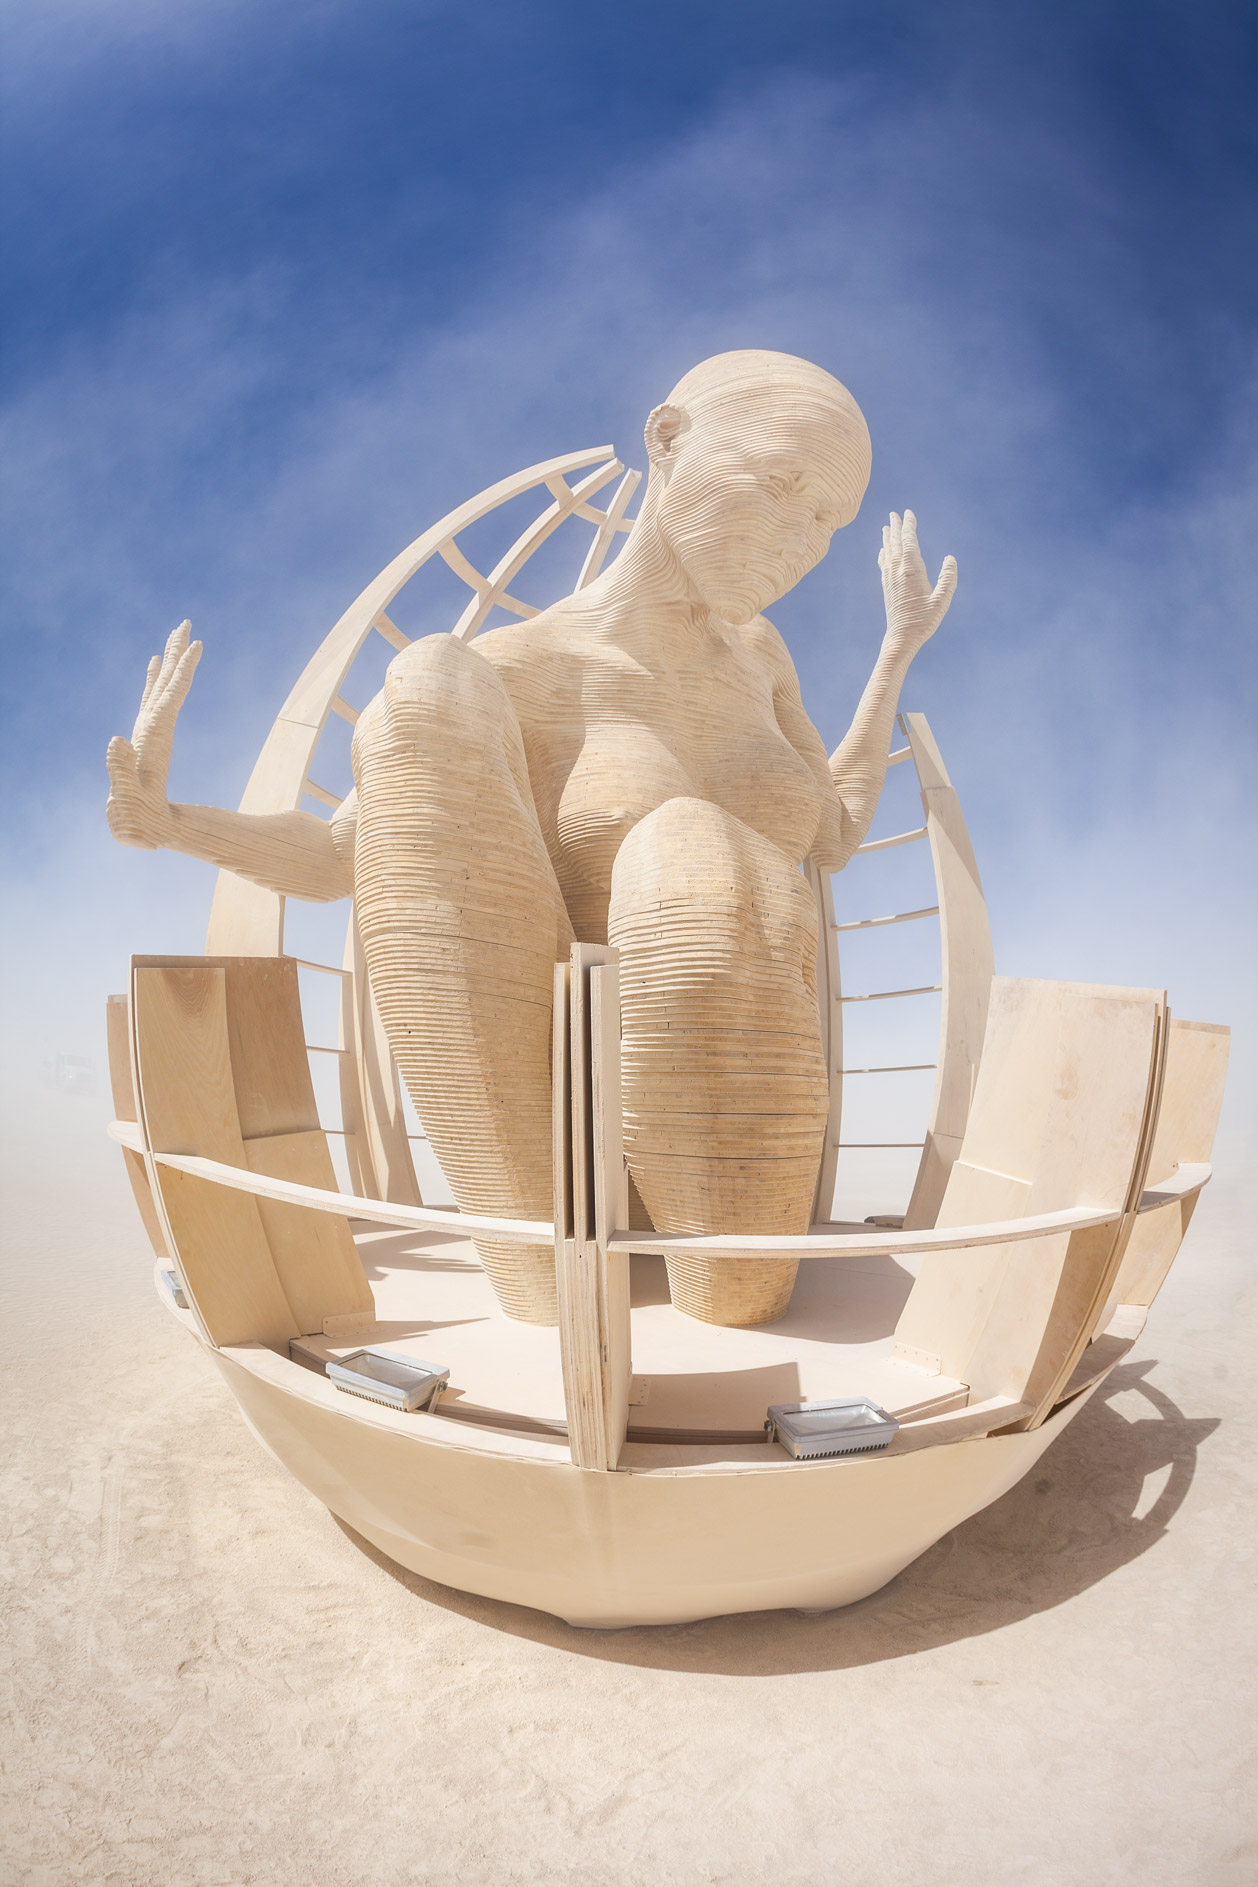 Mariposita at Burning Man 2019